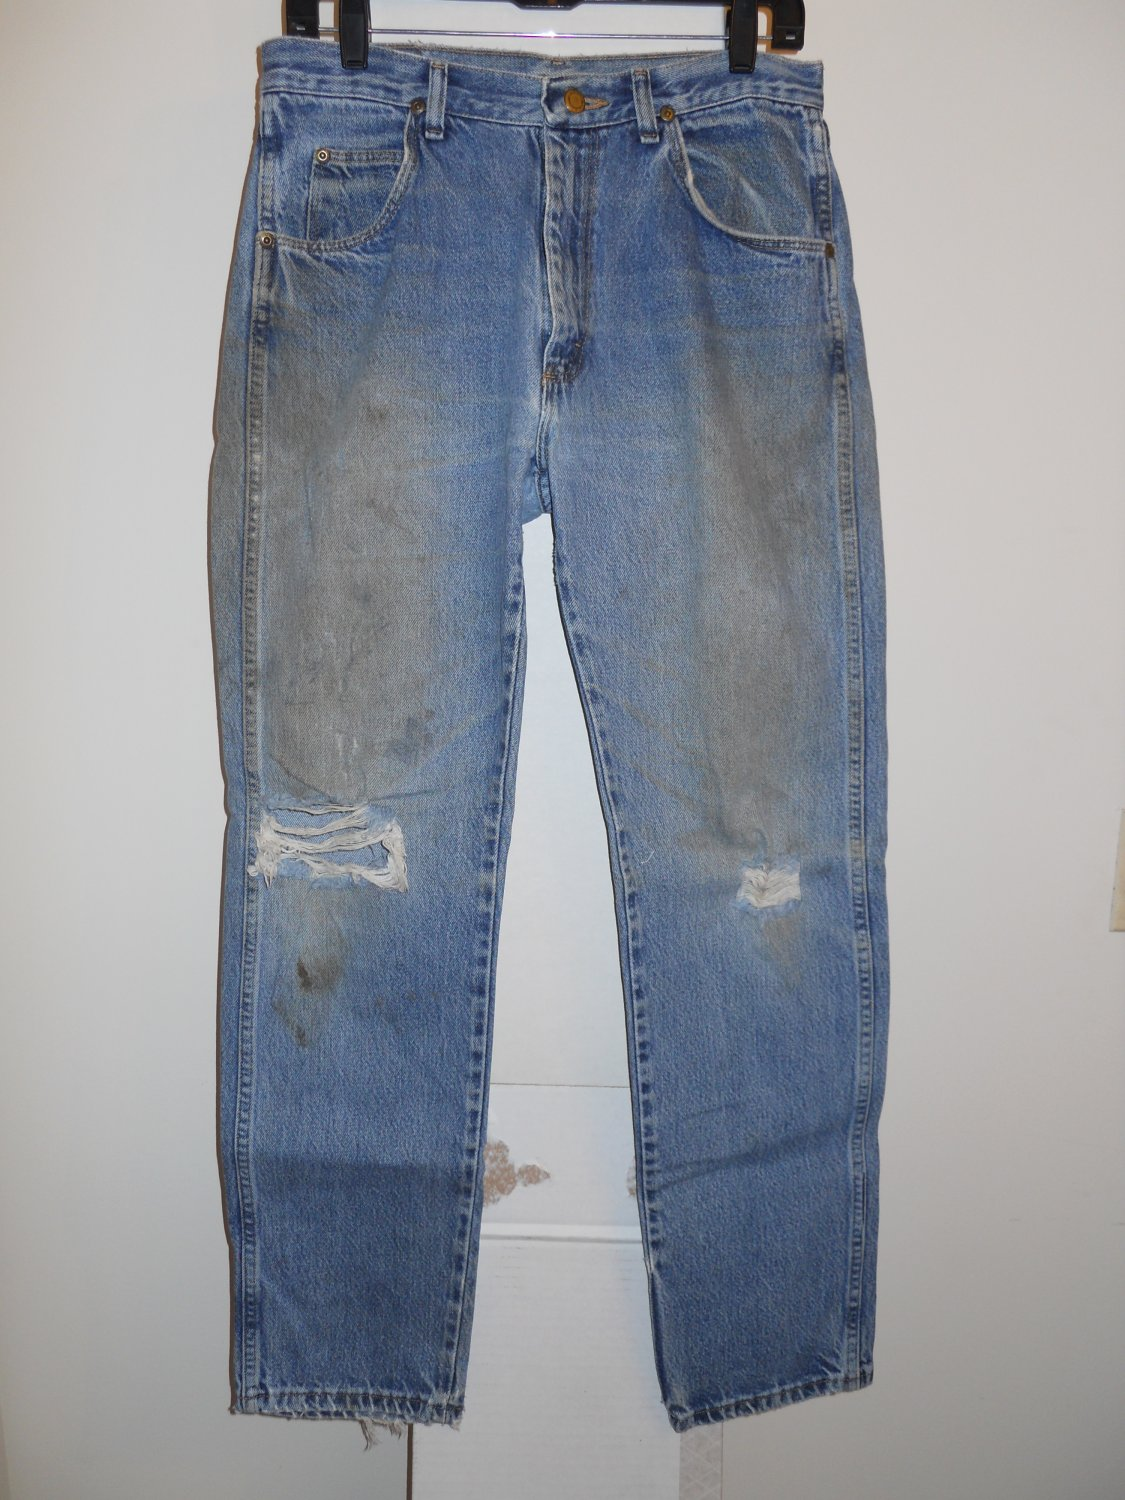 Wrangler used worned torn stained distressed blue denim jeans men's 32x32